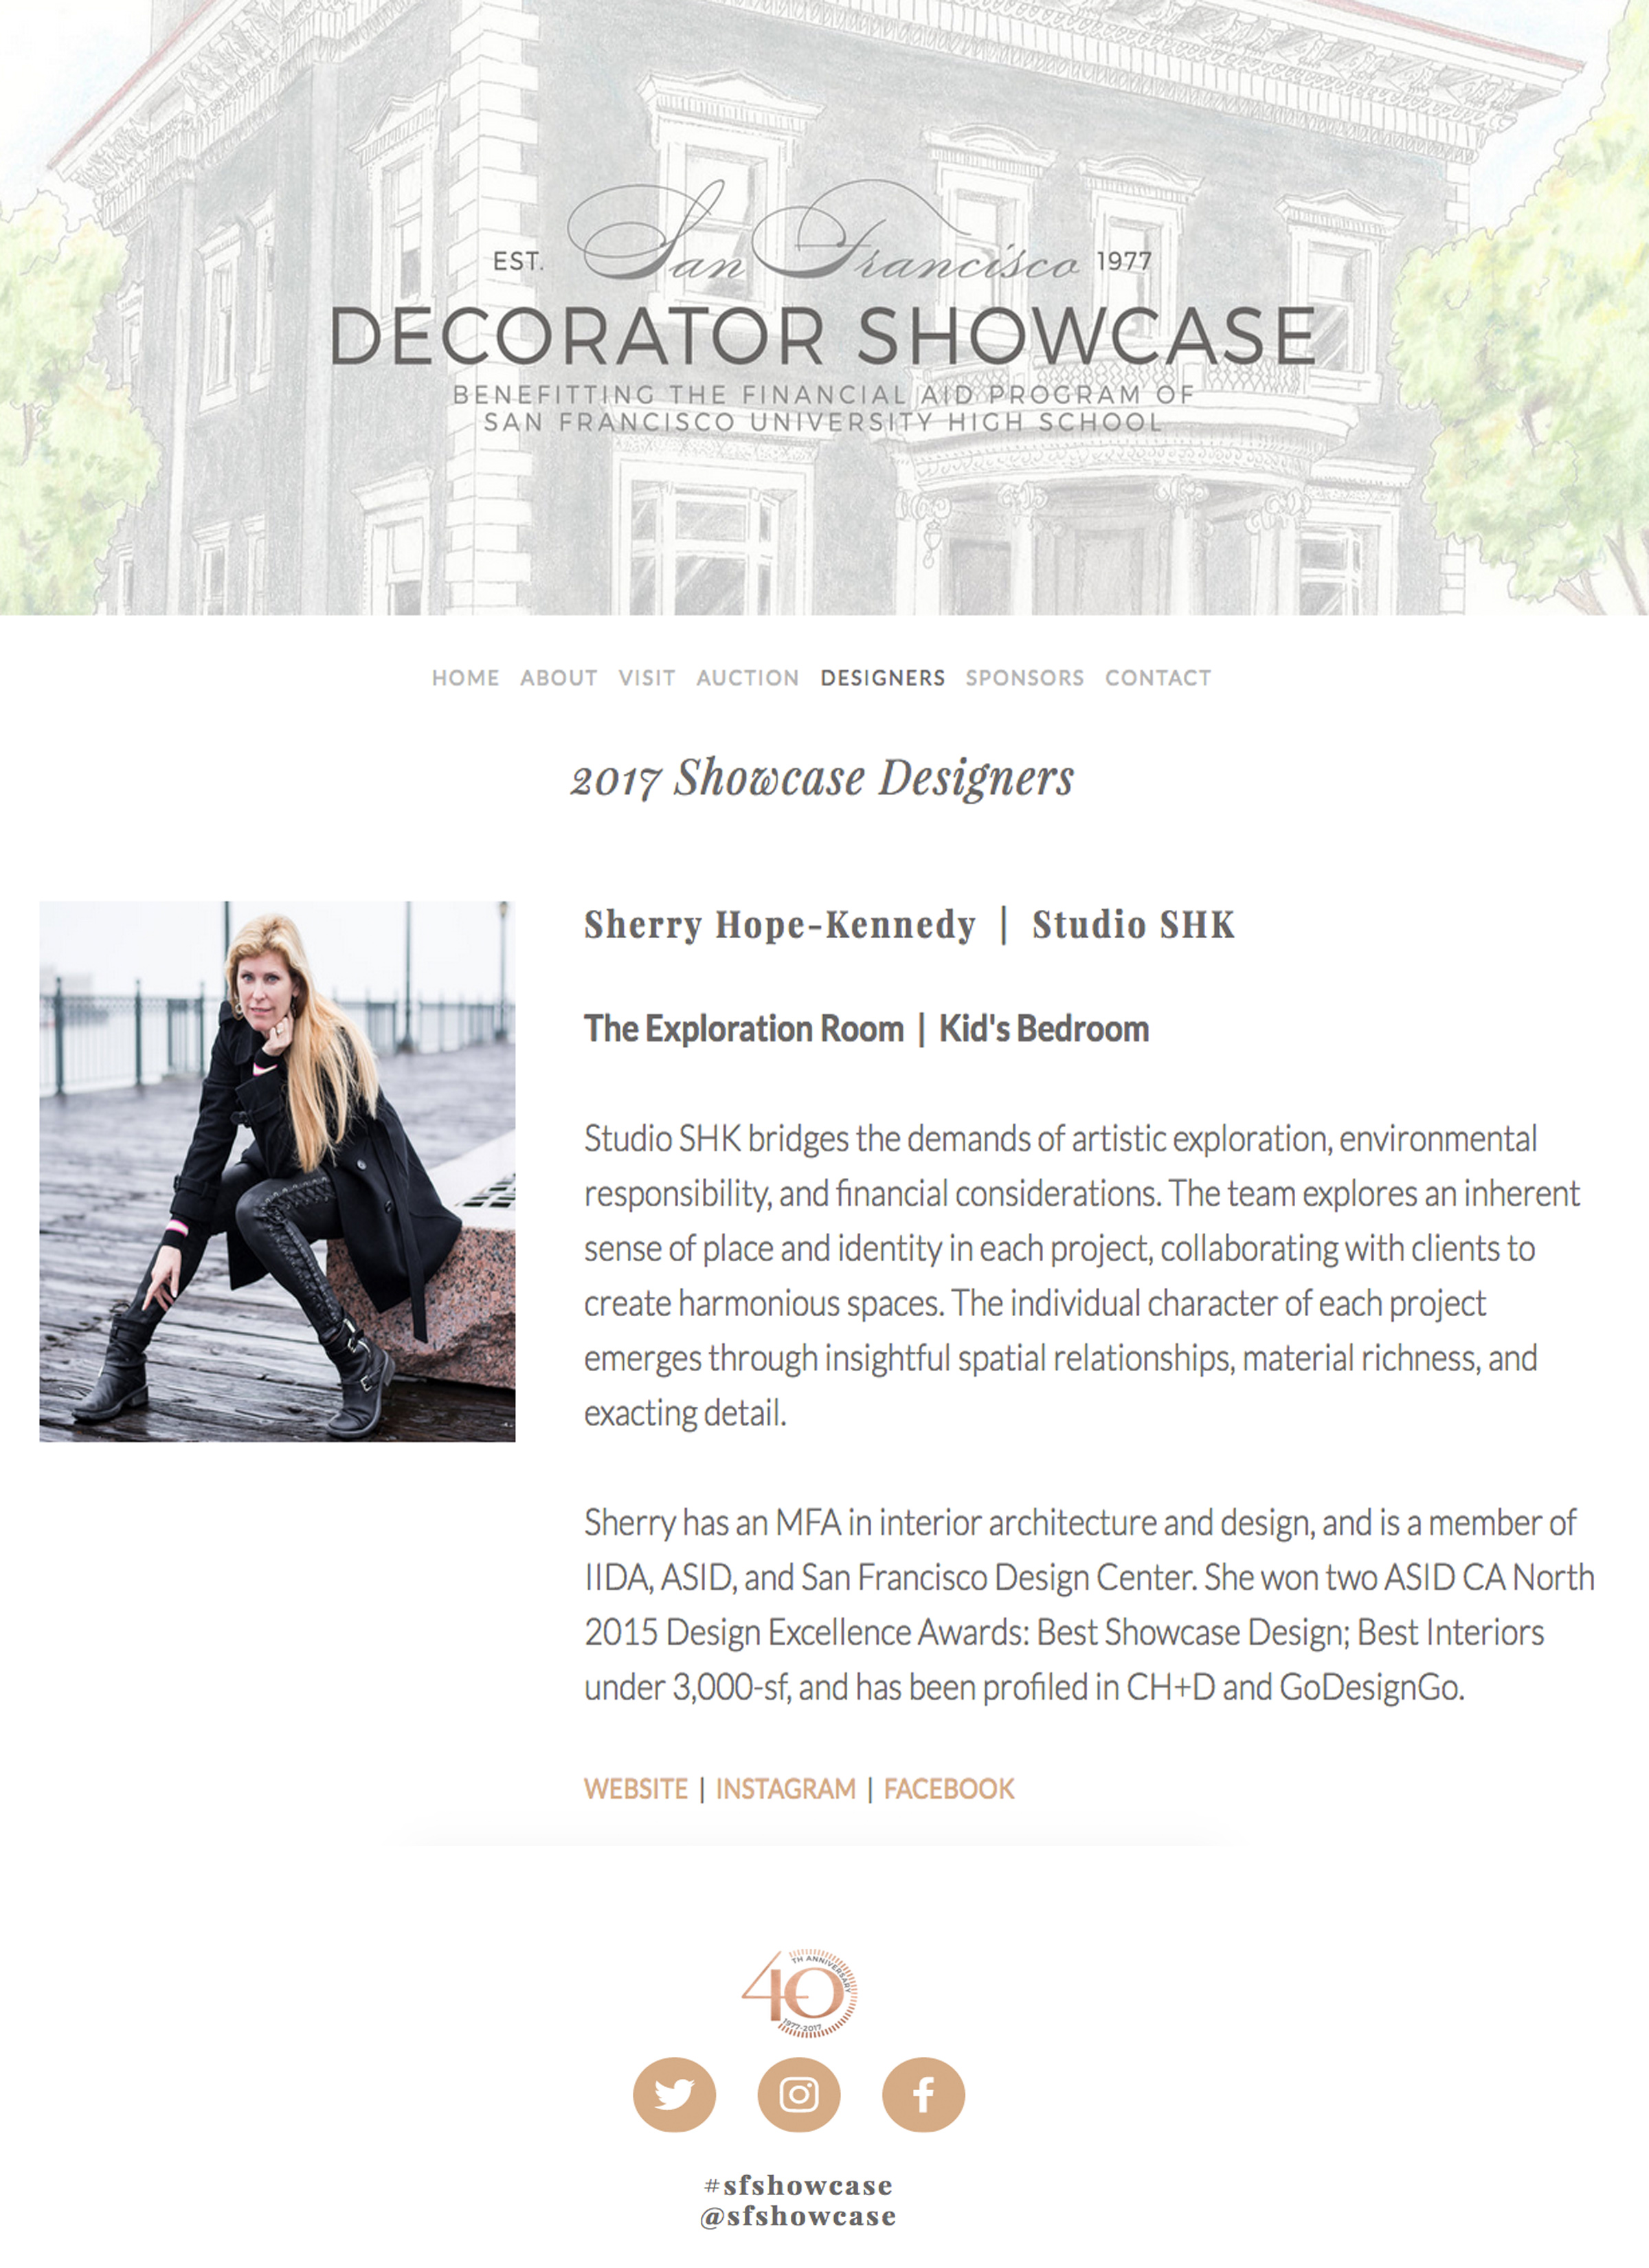 SF Decorator Showcase - San Francisco Decorator Showcase names Sherry as a 2017 Showcase designer, profiling Studio SHK.